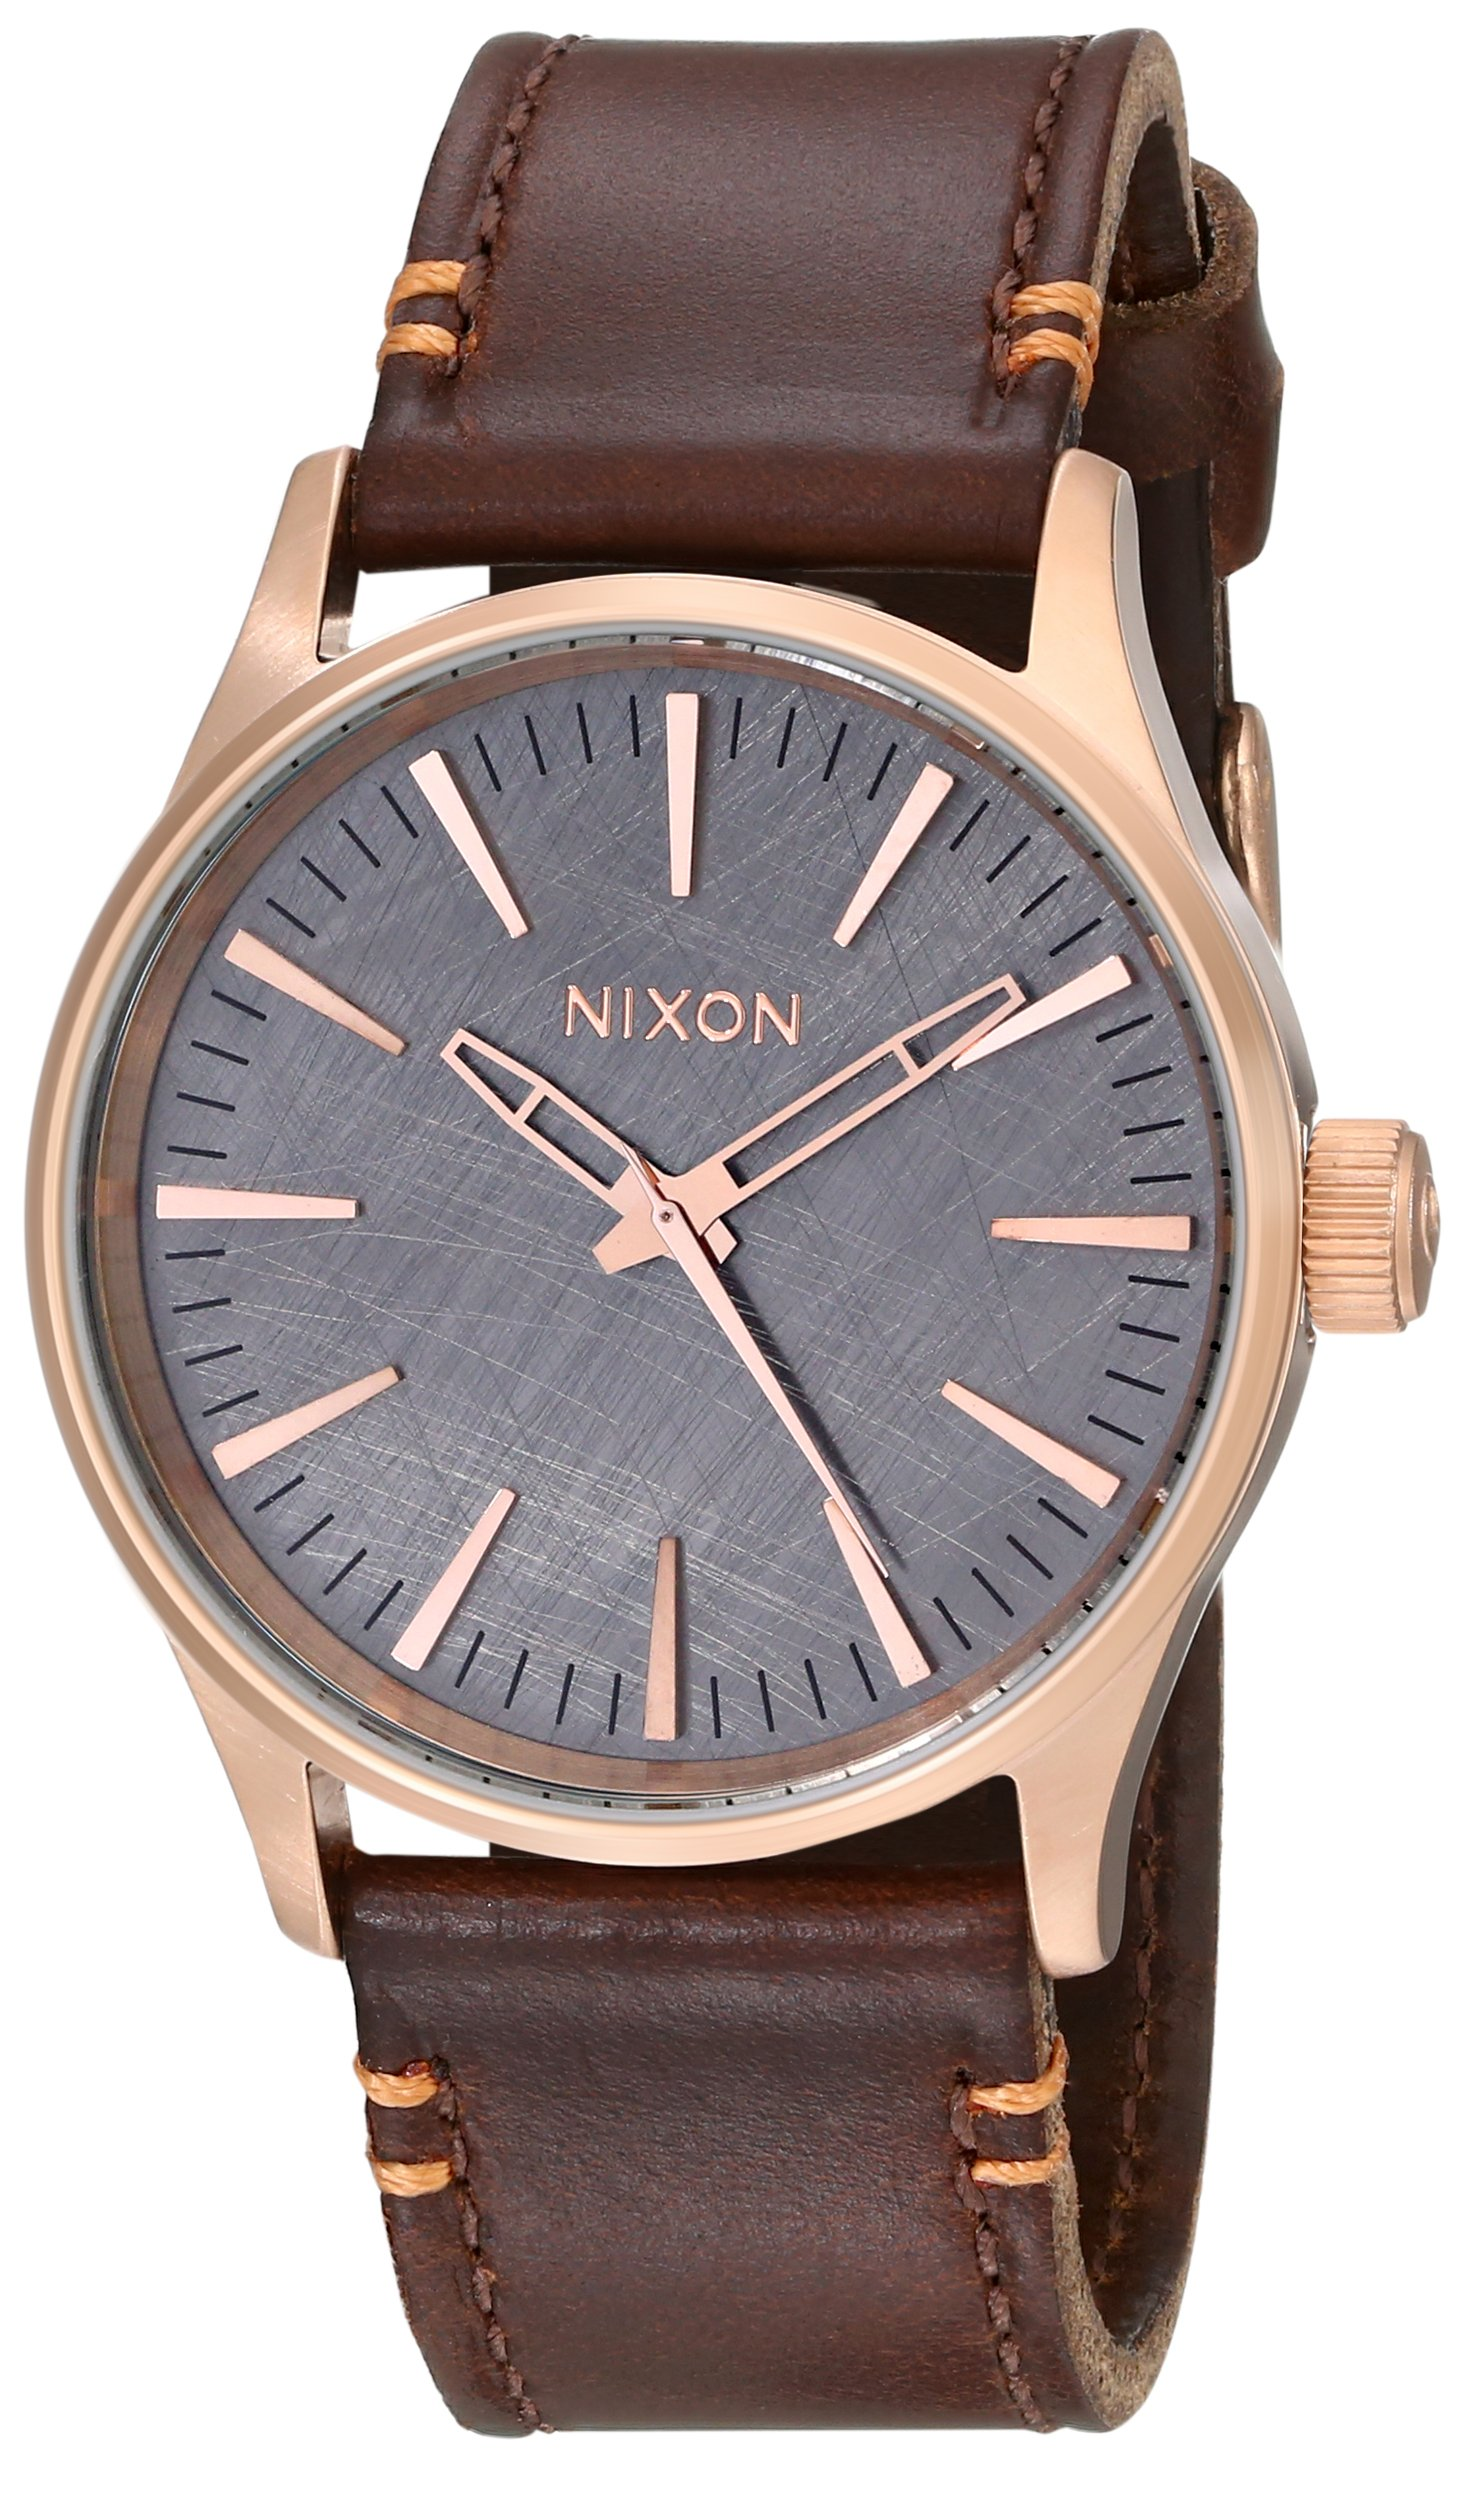 Nixon Men's A3772001 Sentry 38 Leather Watch by NIXON (Image #1)